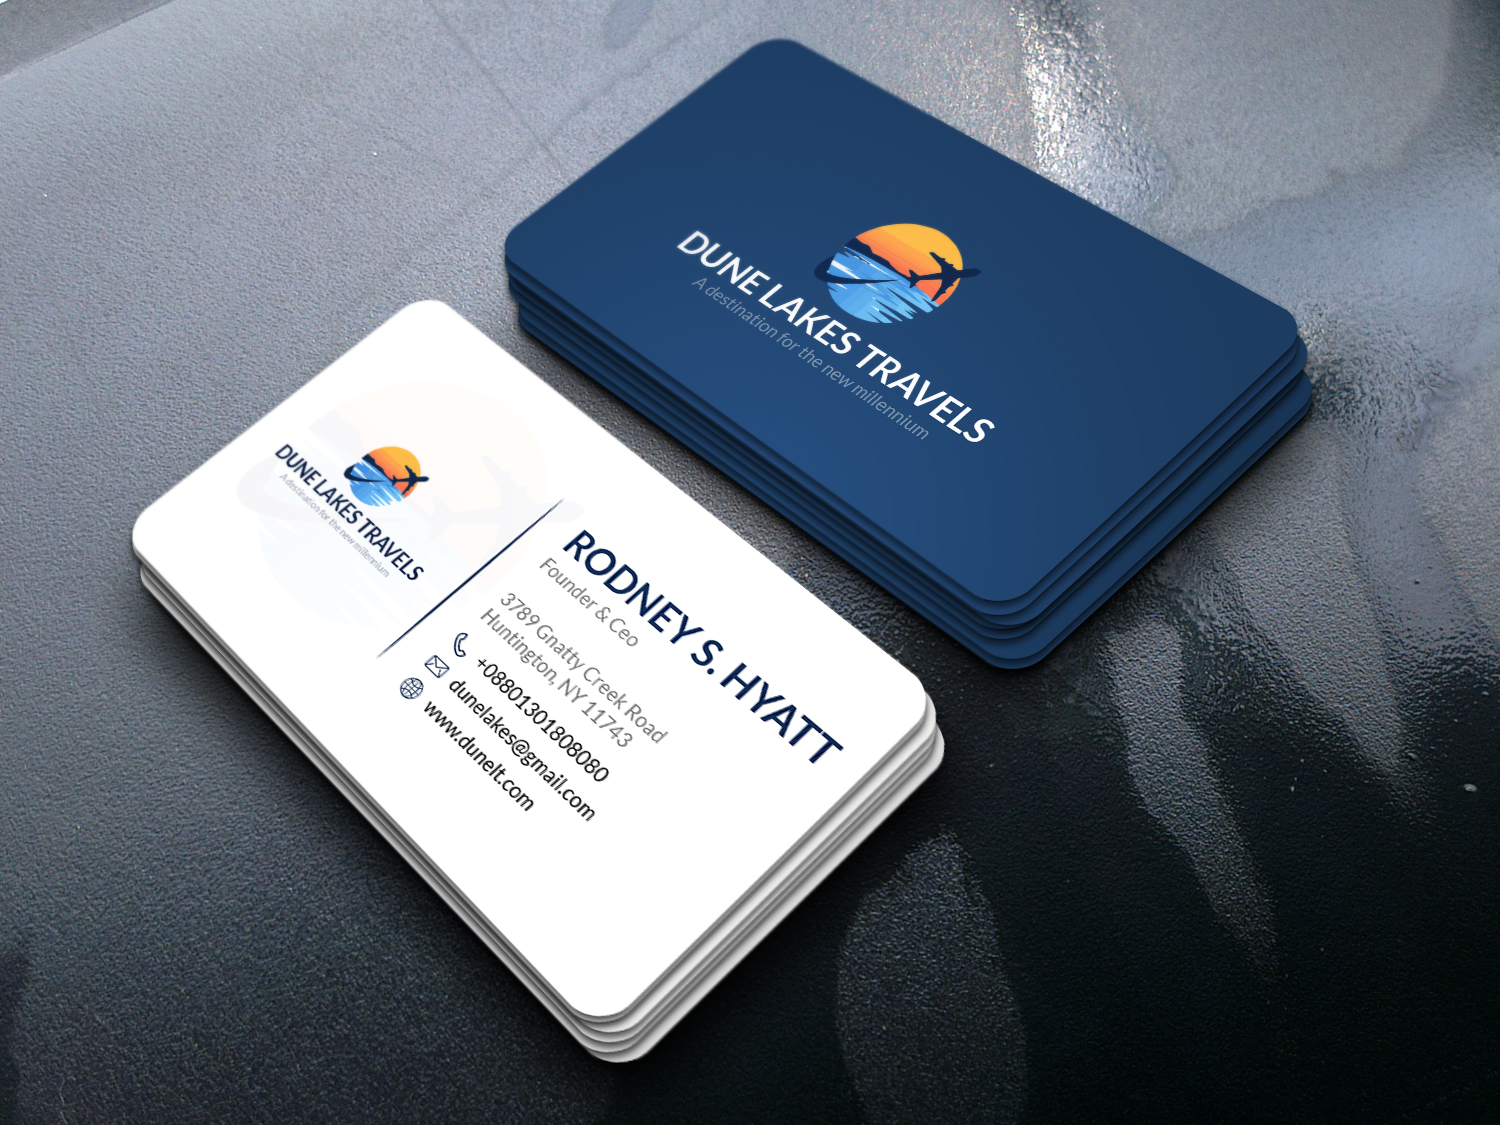 I Will provide you with a High Quality minimalist Business card design